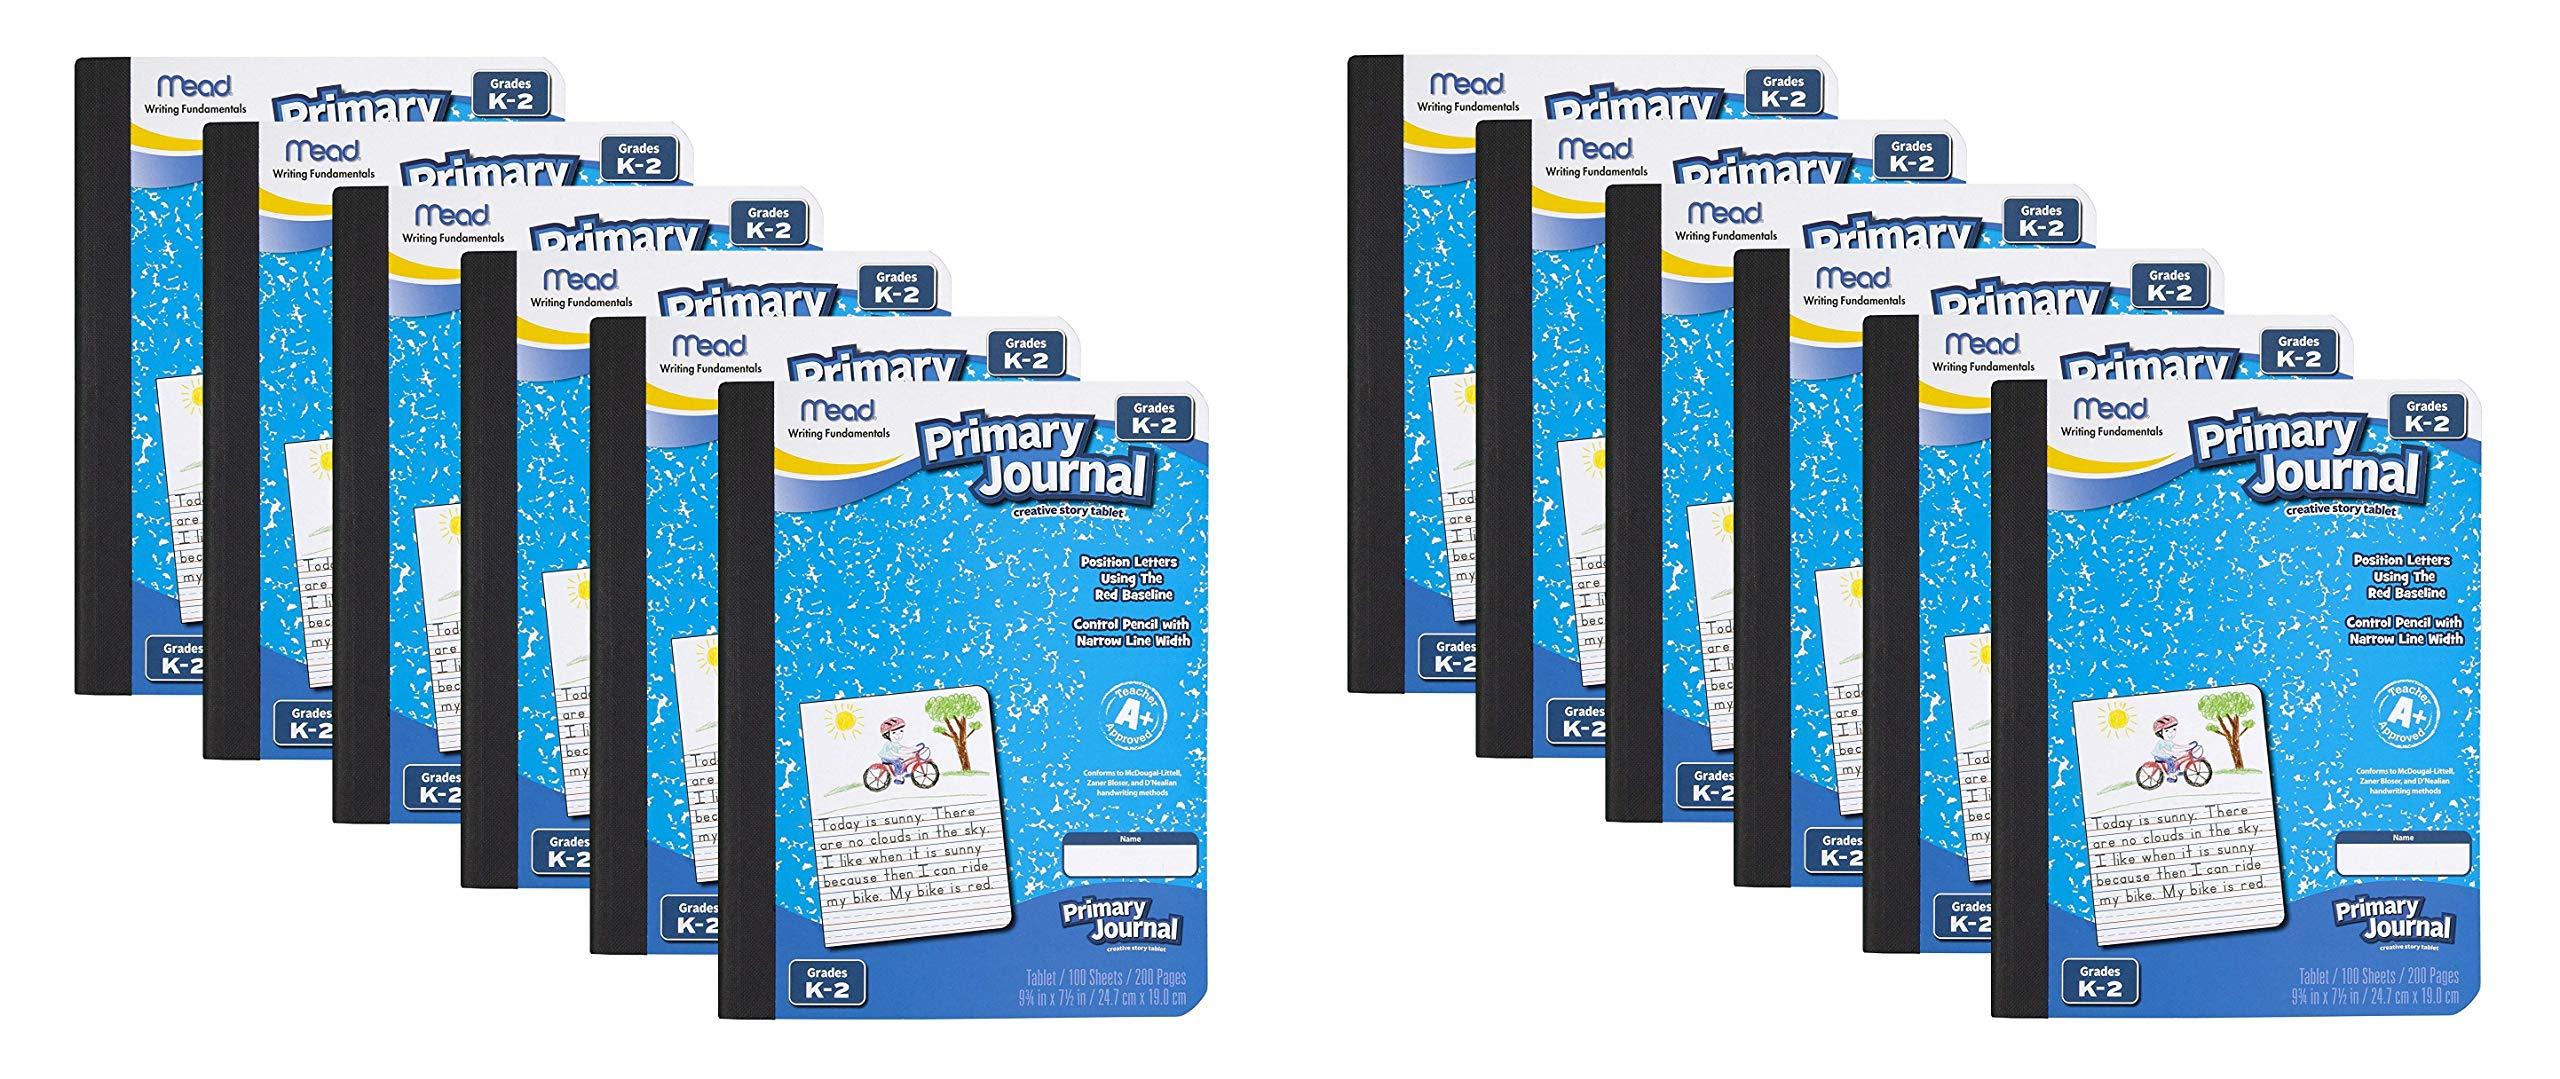 Mead Primary Journal Creative Story Tablet, Grades K-2, 12 Count (12) by Mead